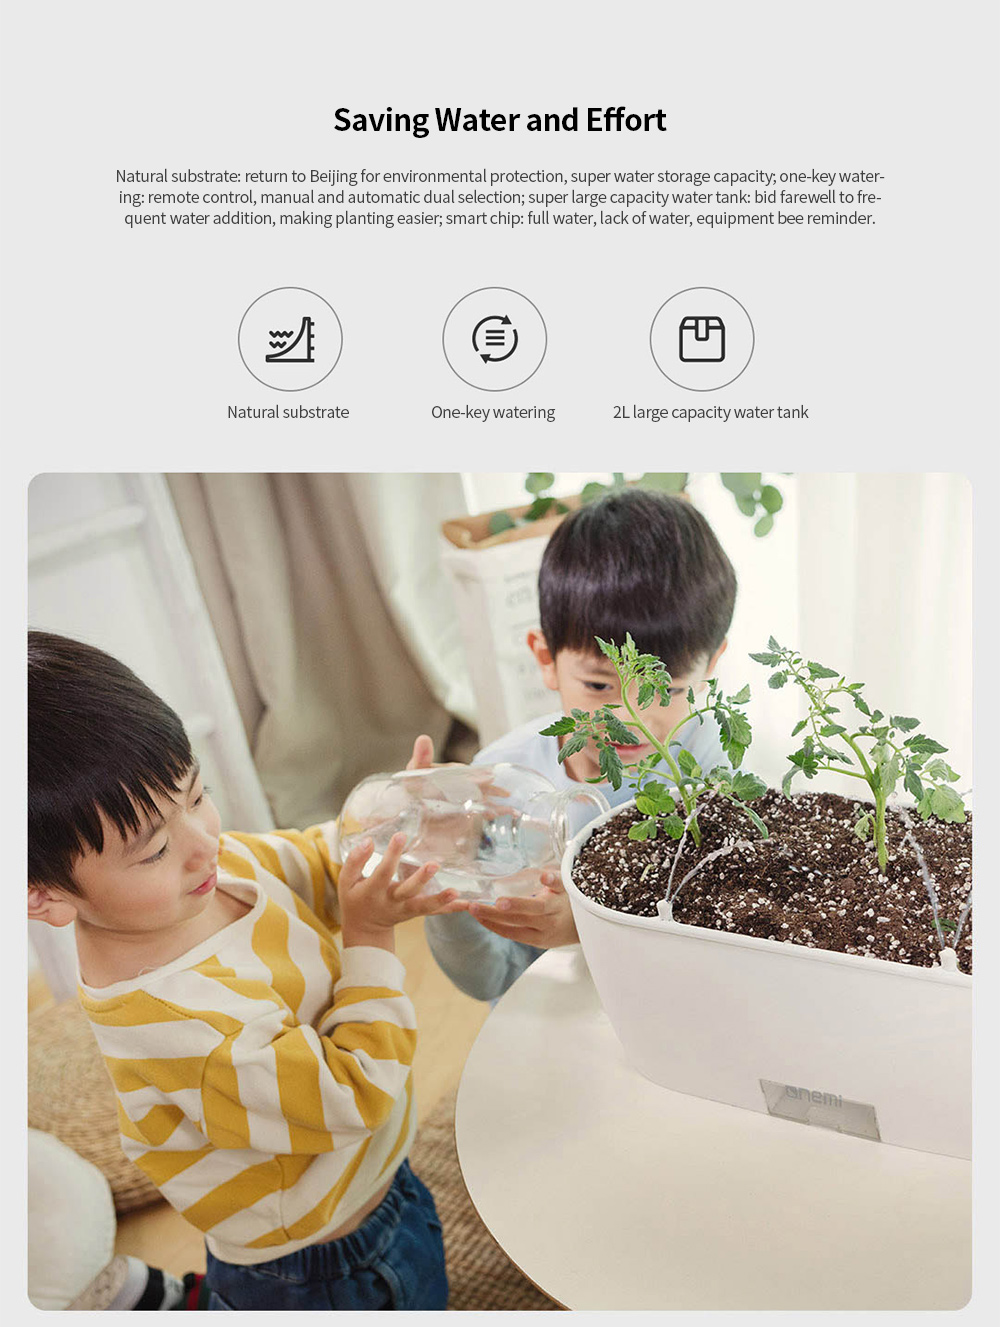 YMT-20201 Smart Flowerpot Field Intelligent Planting Partner Standard Version from Youpin - White